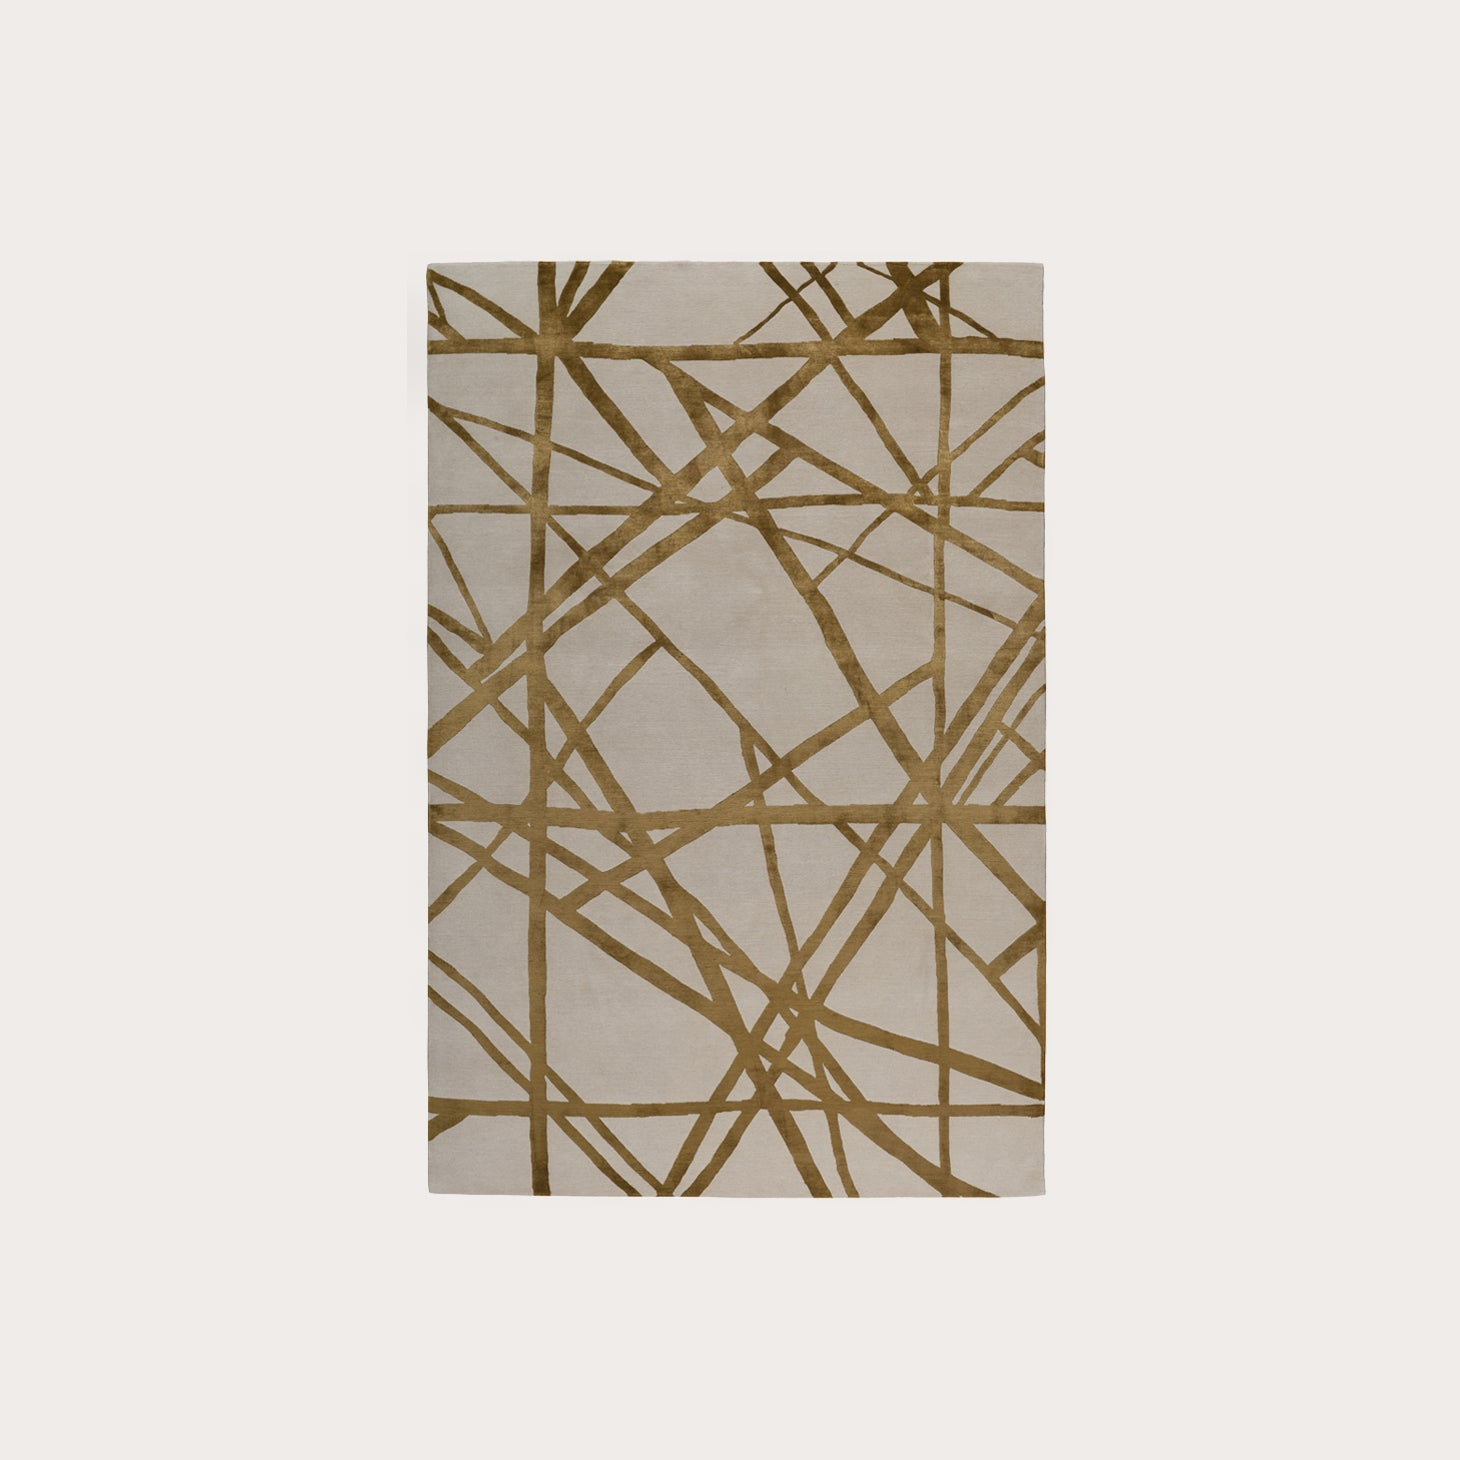 Channels Copper Floor Coverings Kelly Wearstler Designer Furniture Sku: 391-150-11056